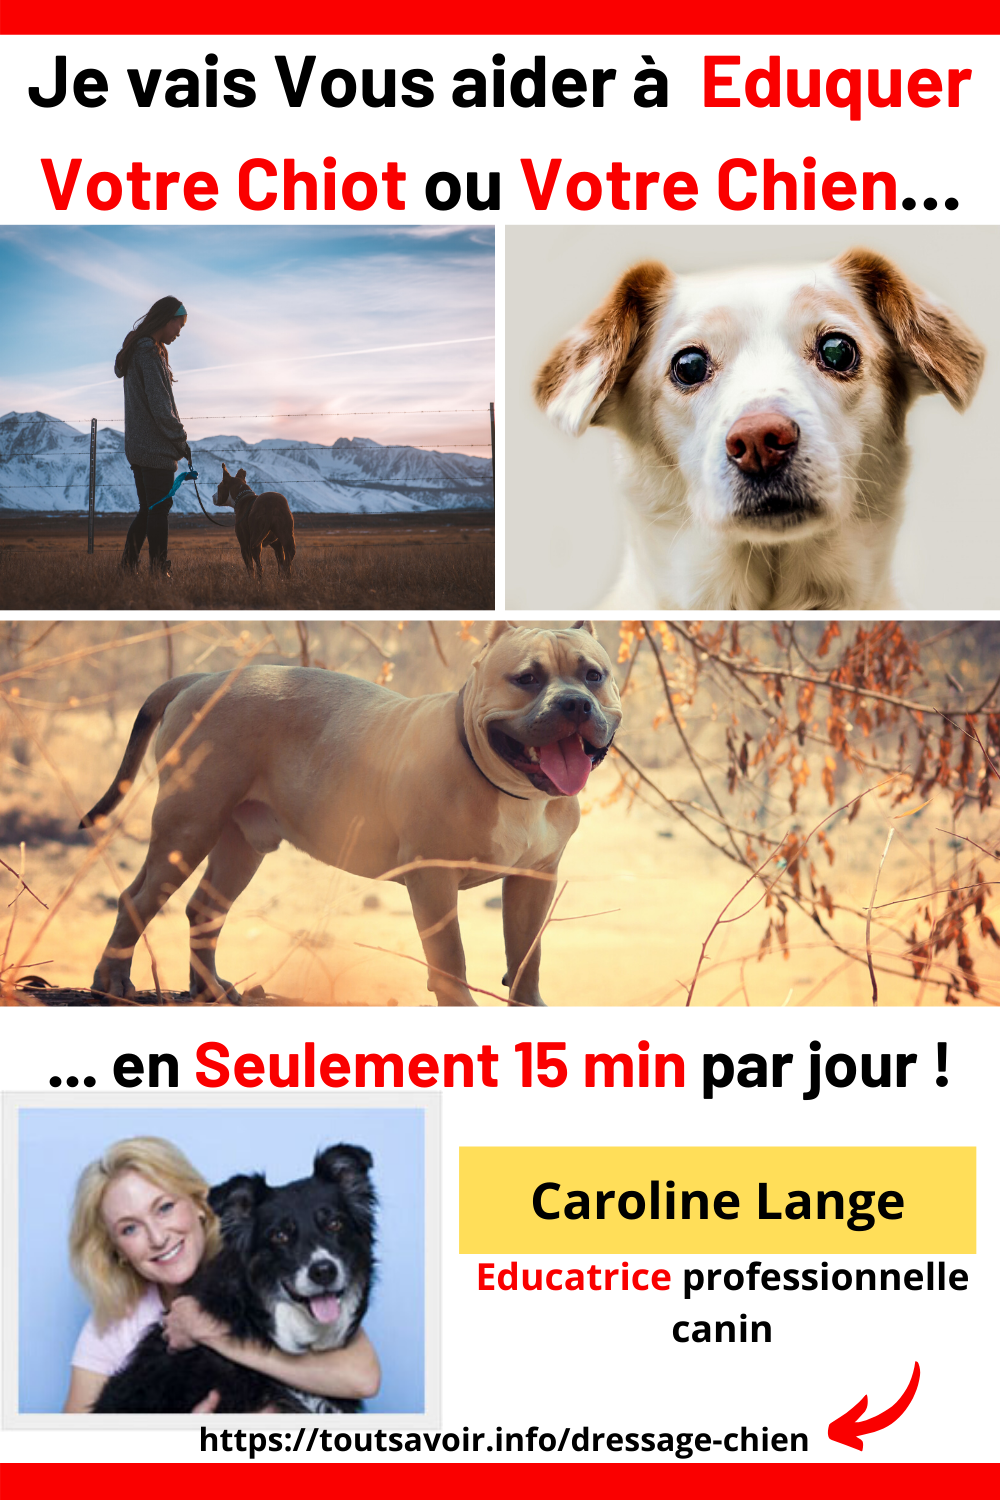 Epingle Sur Education Dressage Chien Guide Pratique